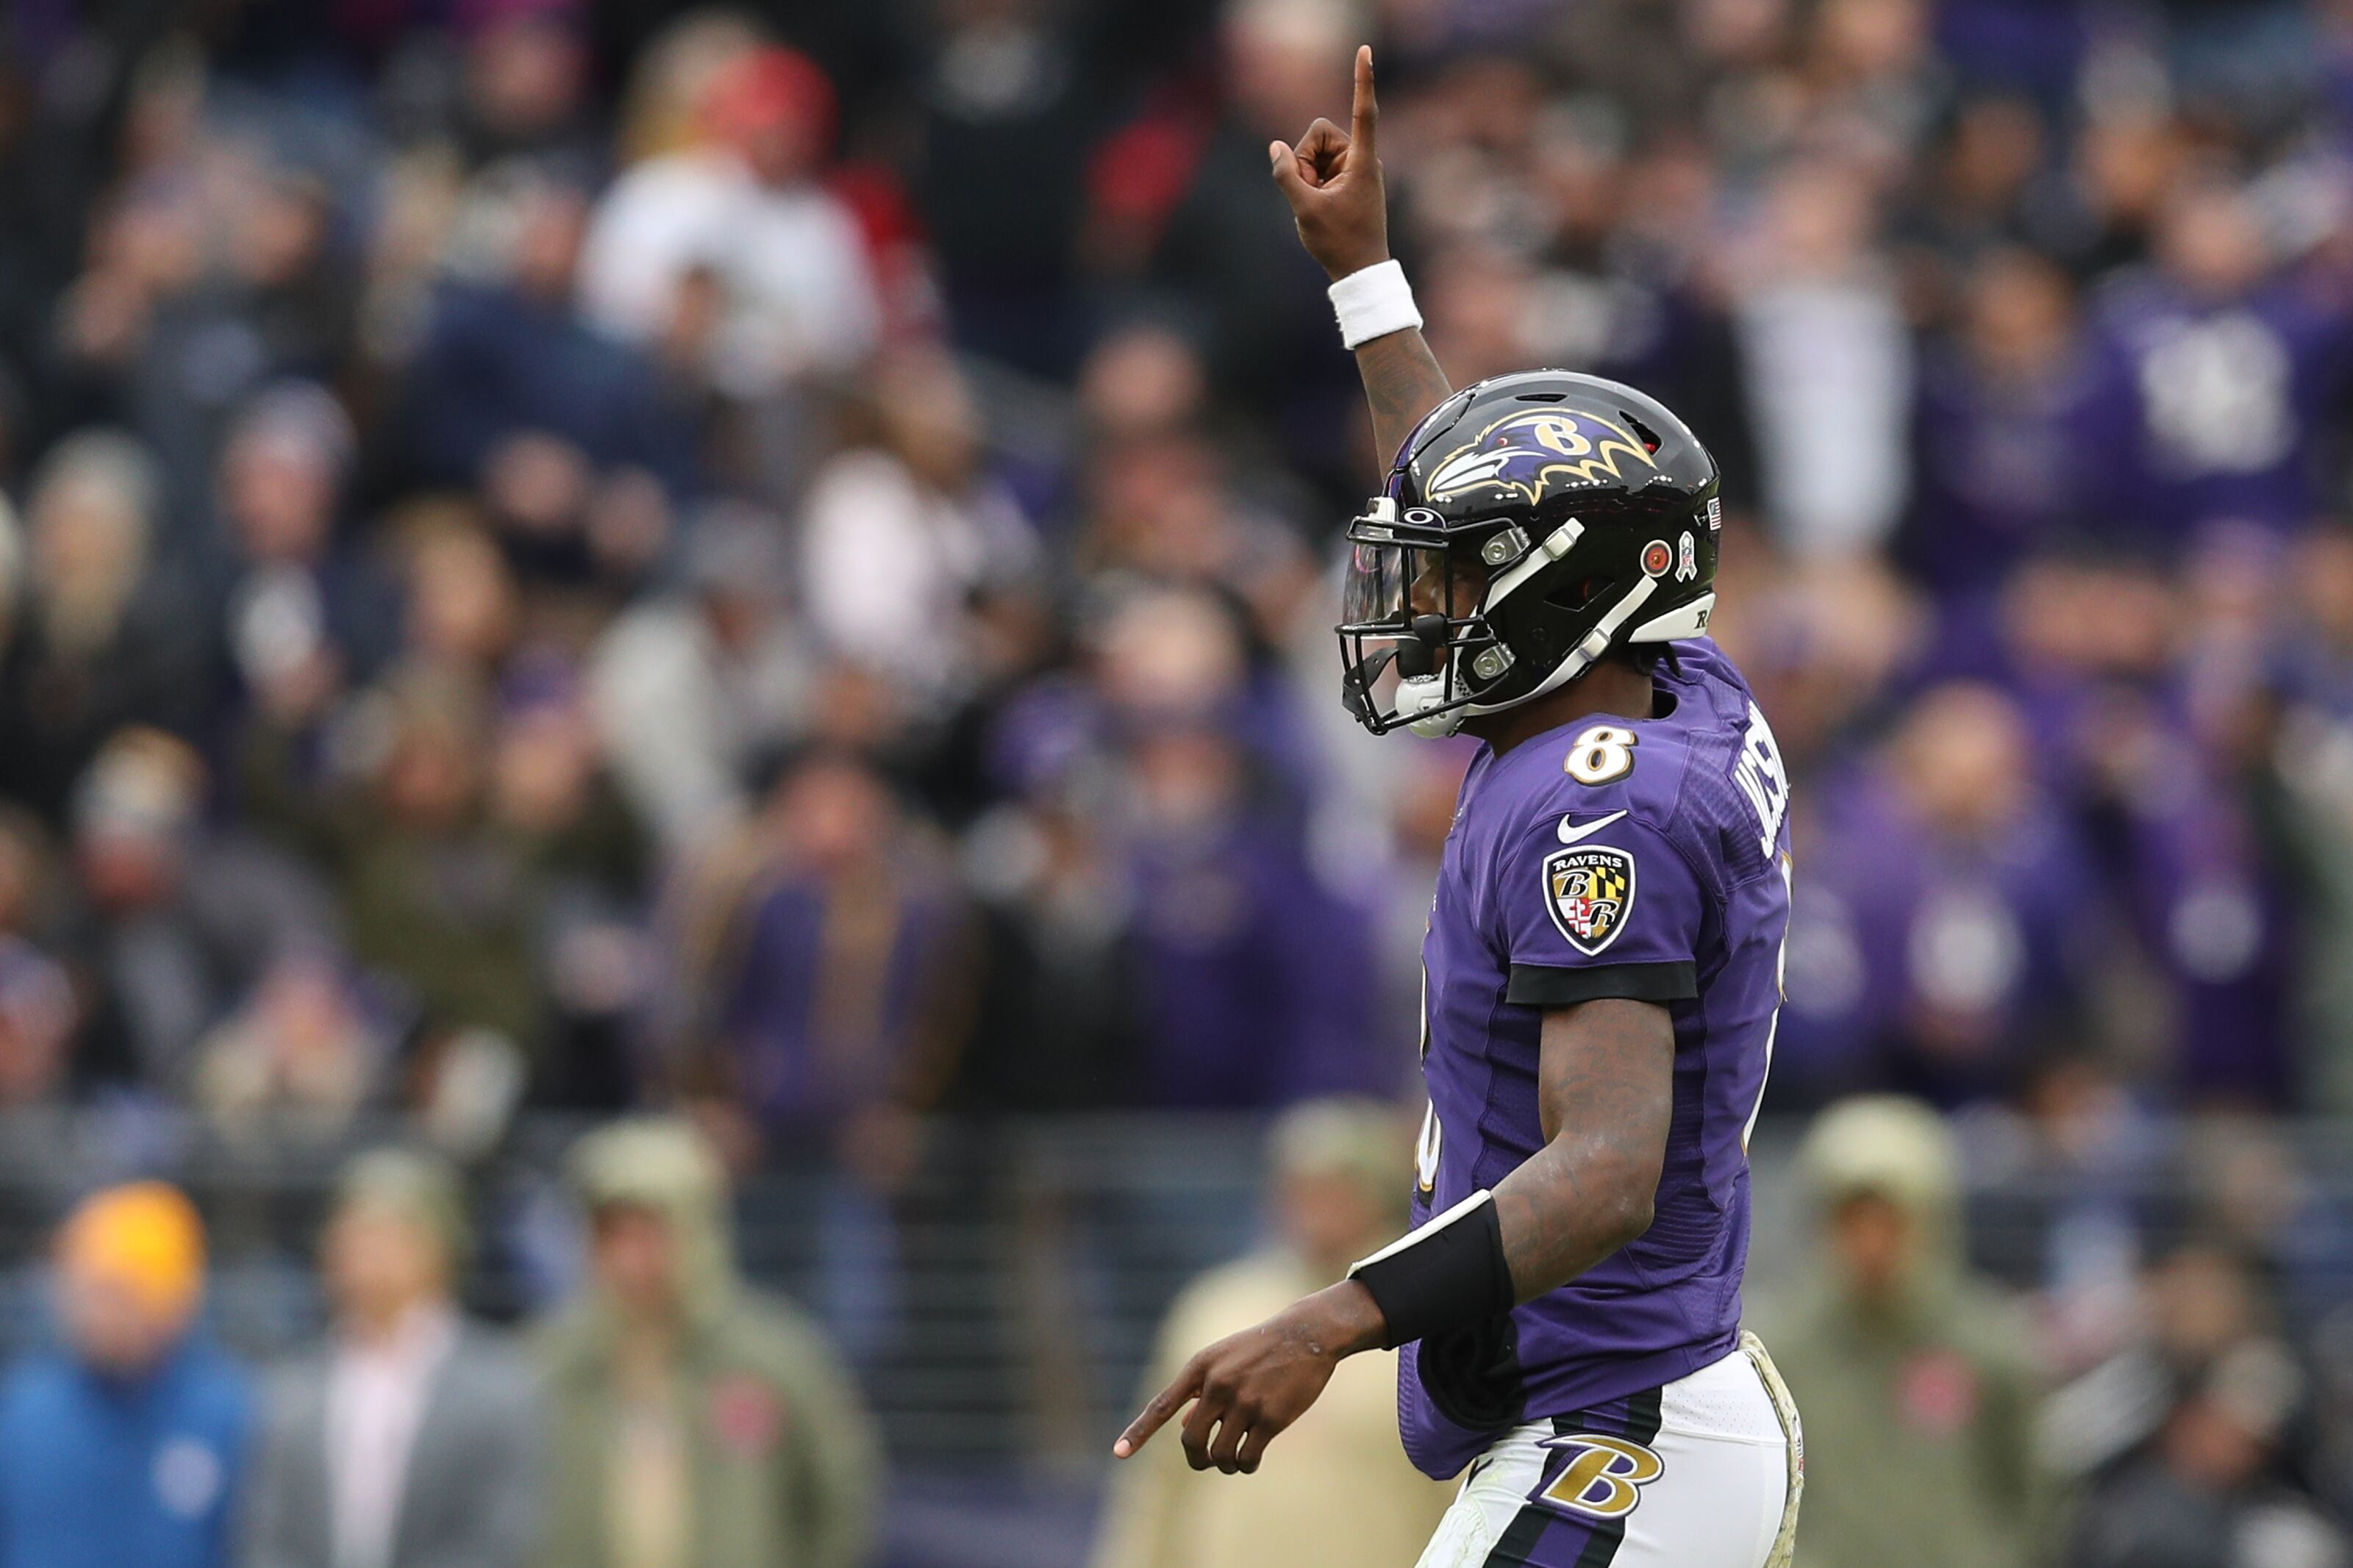 Lamar Jackson showed why he's the frontrunner in the MVP race